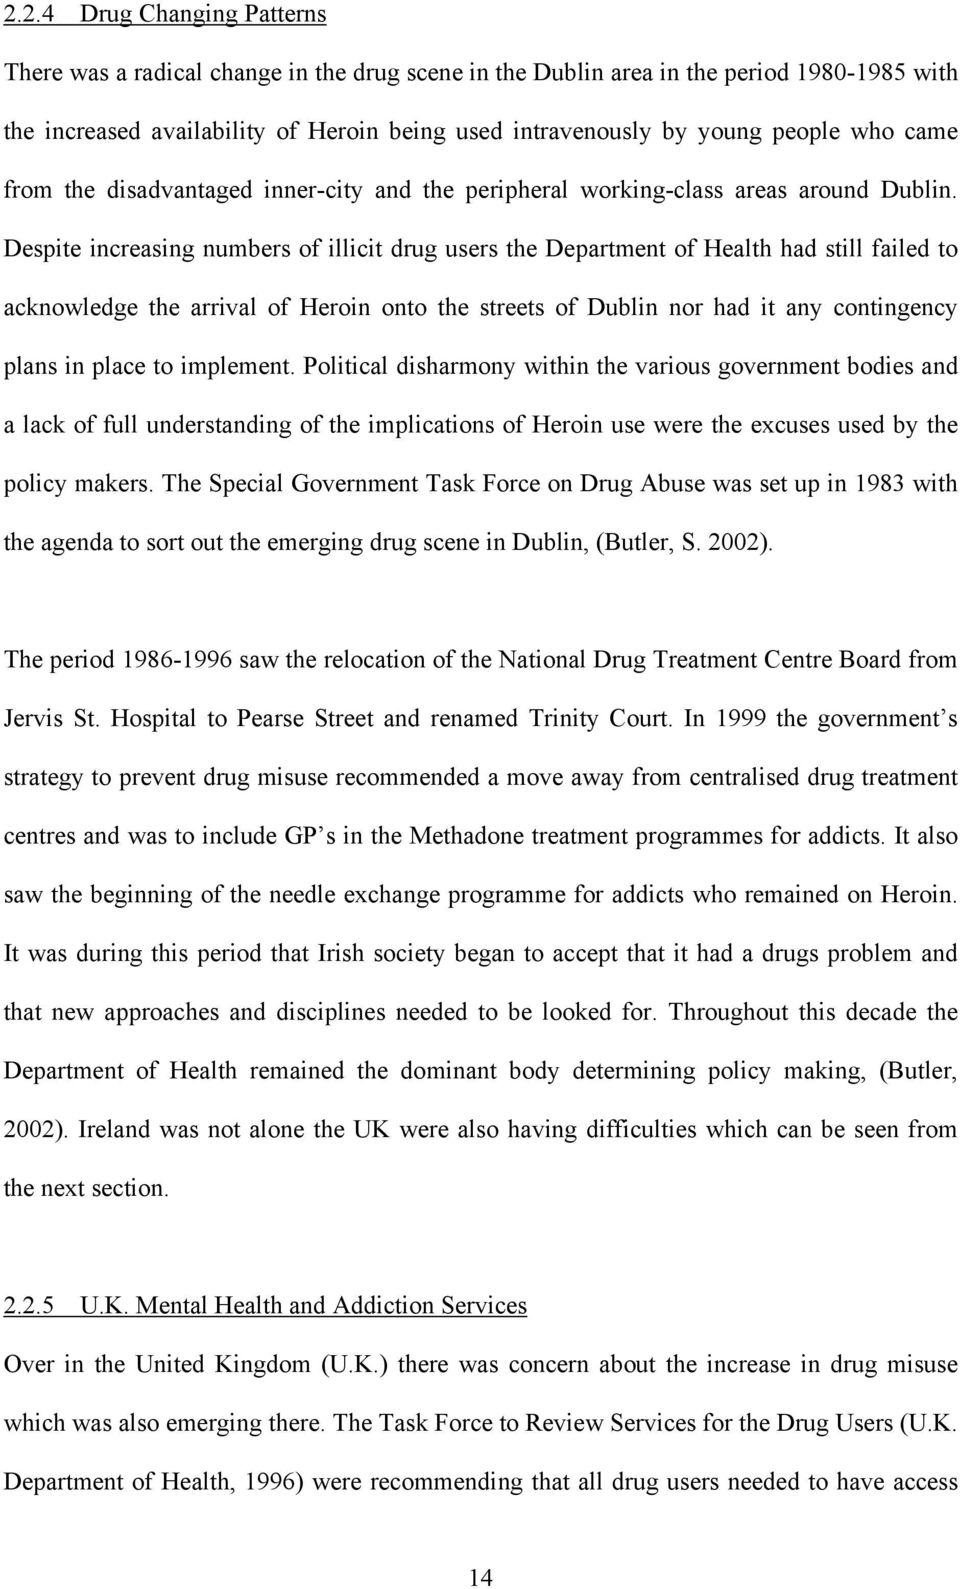 Despite increasing numbers of illicit drug users the Department of Health had still failed to acknowledge the arrival of Heroin onto the streets of Dublin nor had it any contingency plans in place to